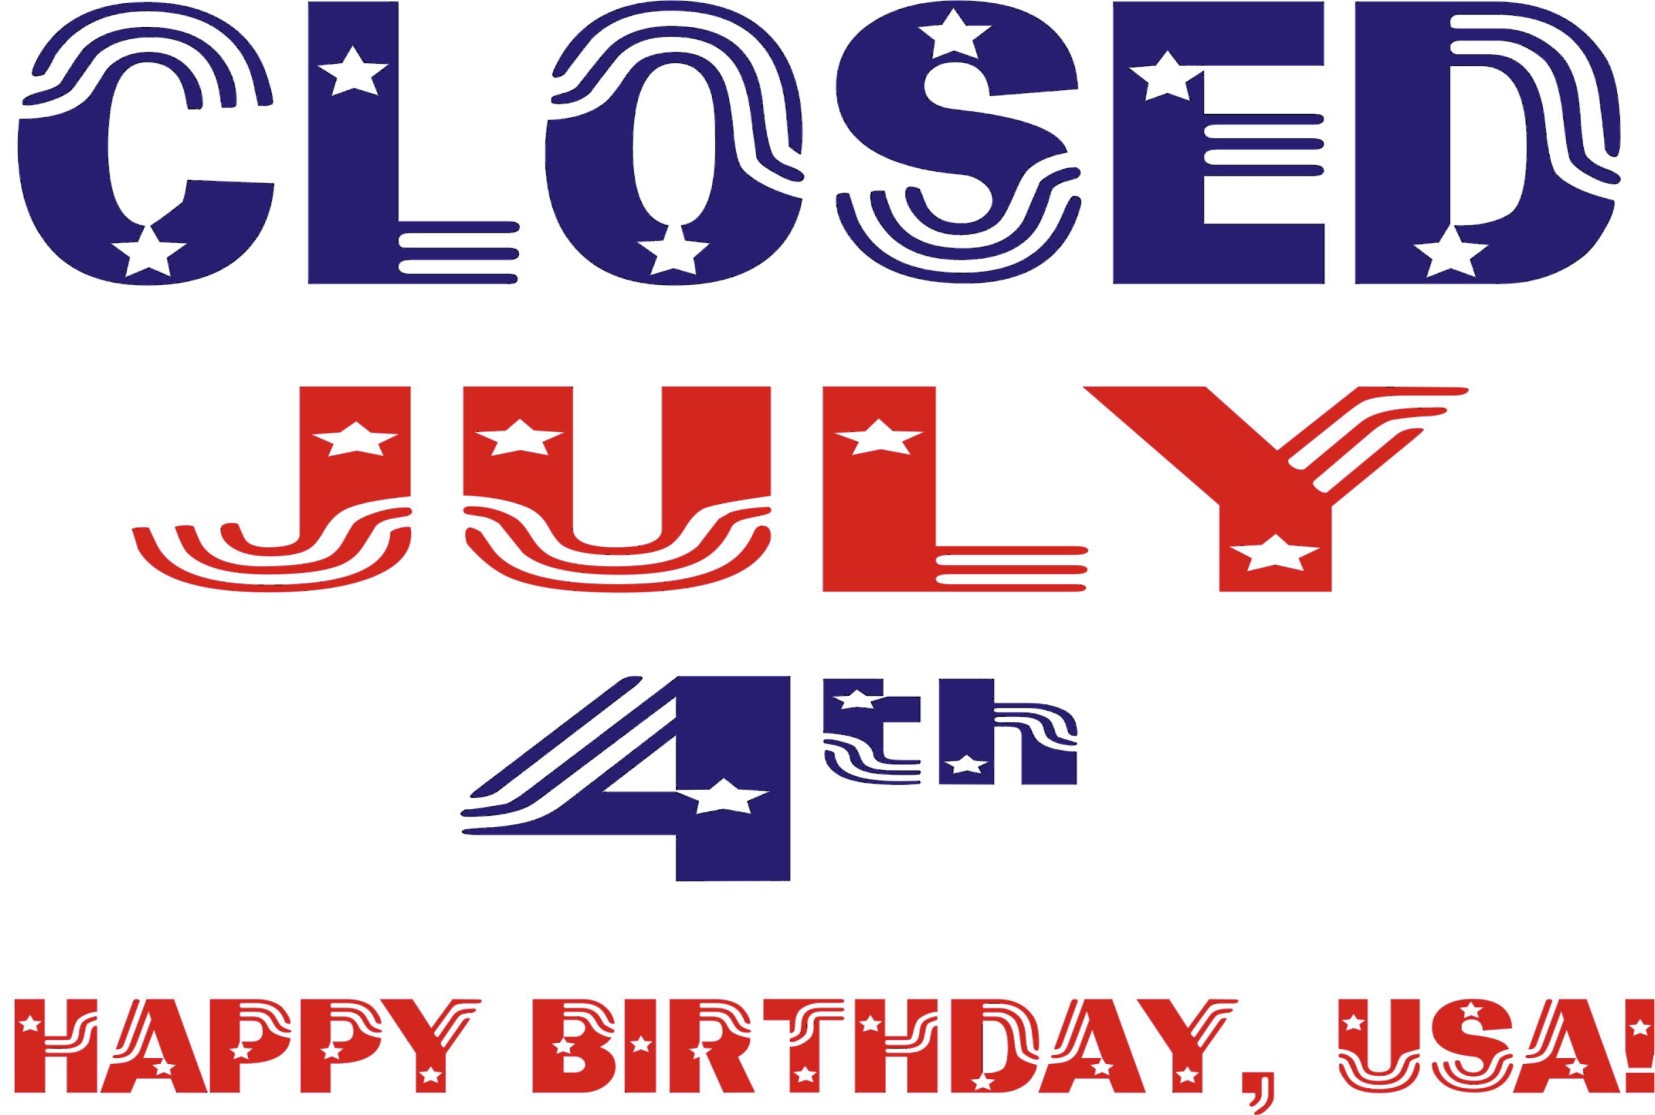 closed on july 4th sign